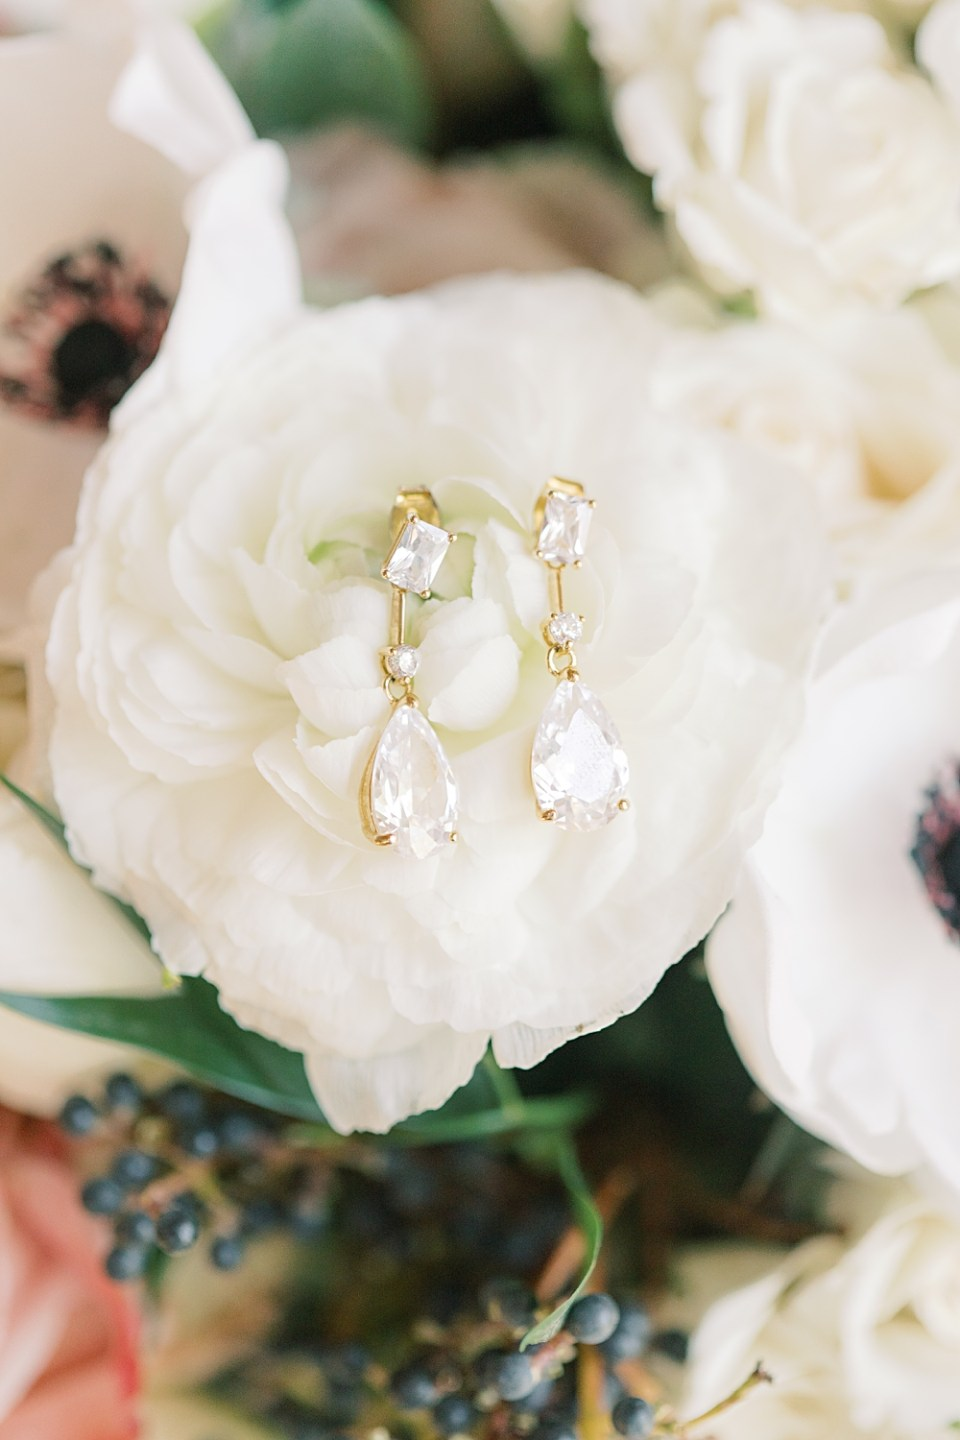 bridal jewelry | earrings detail shots | sarah canning photography